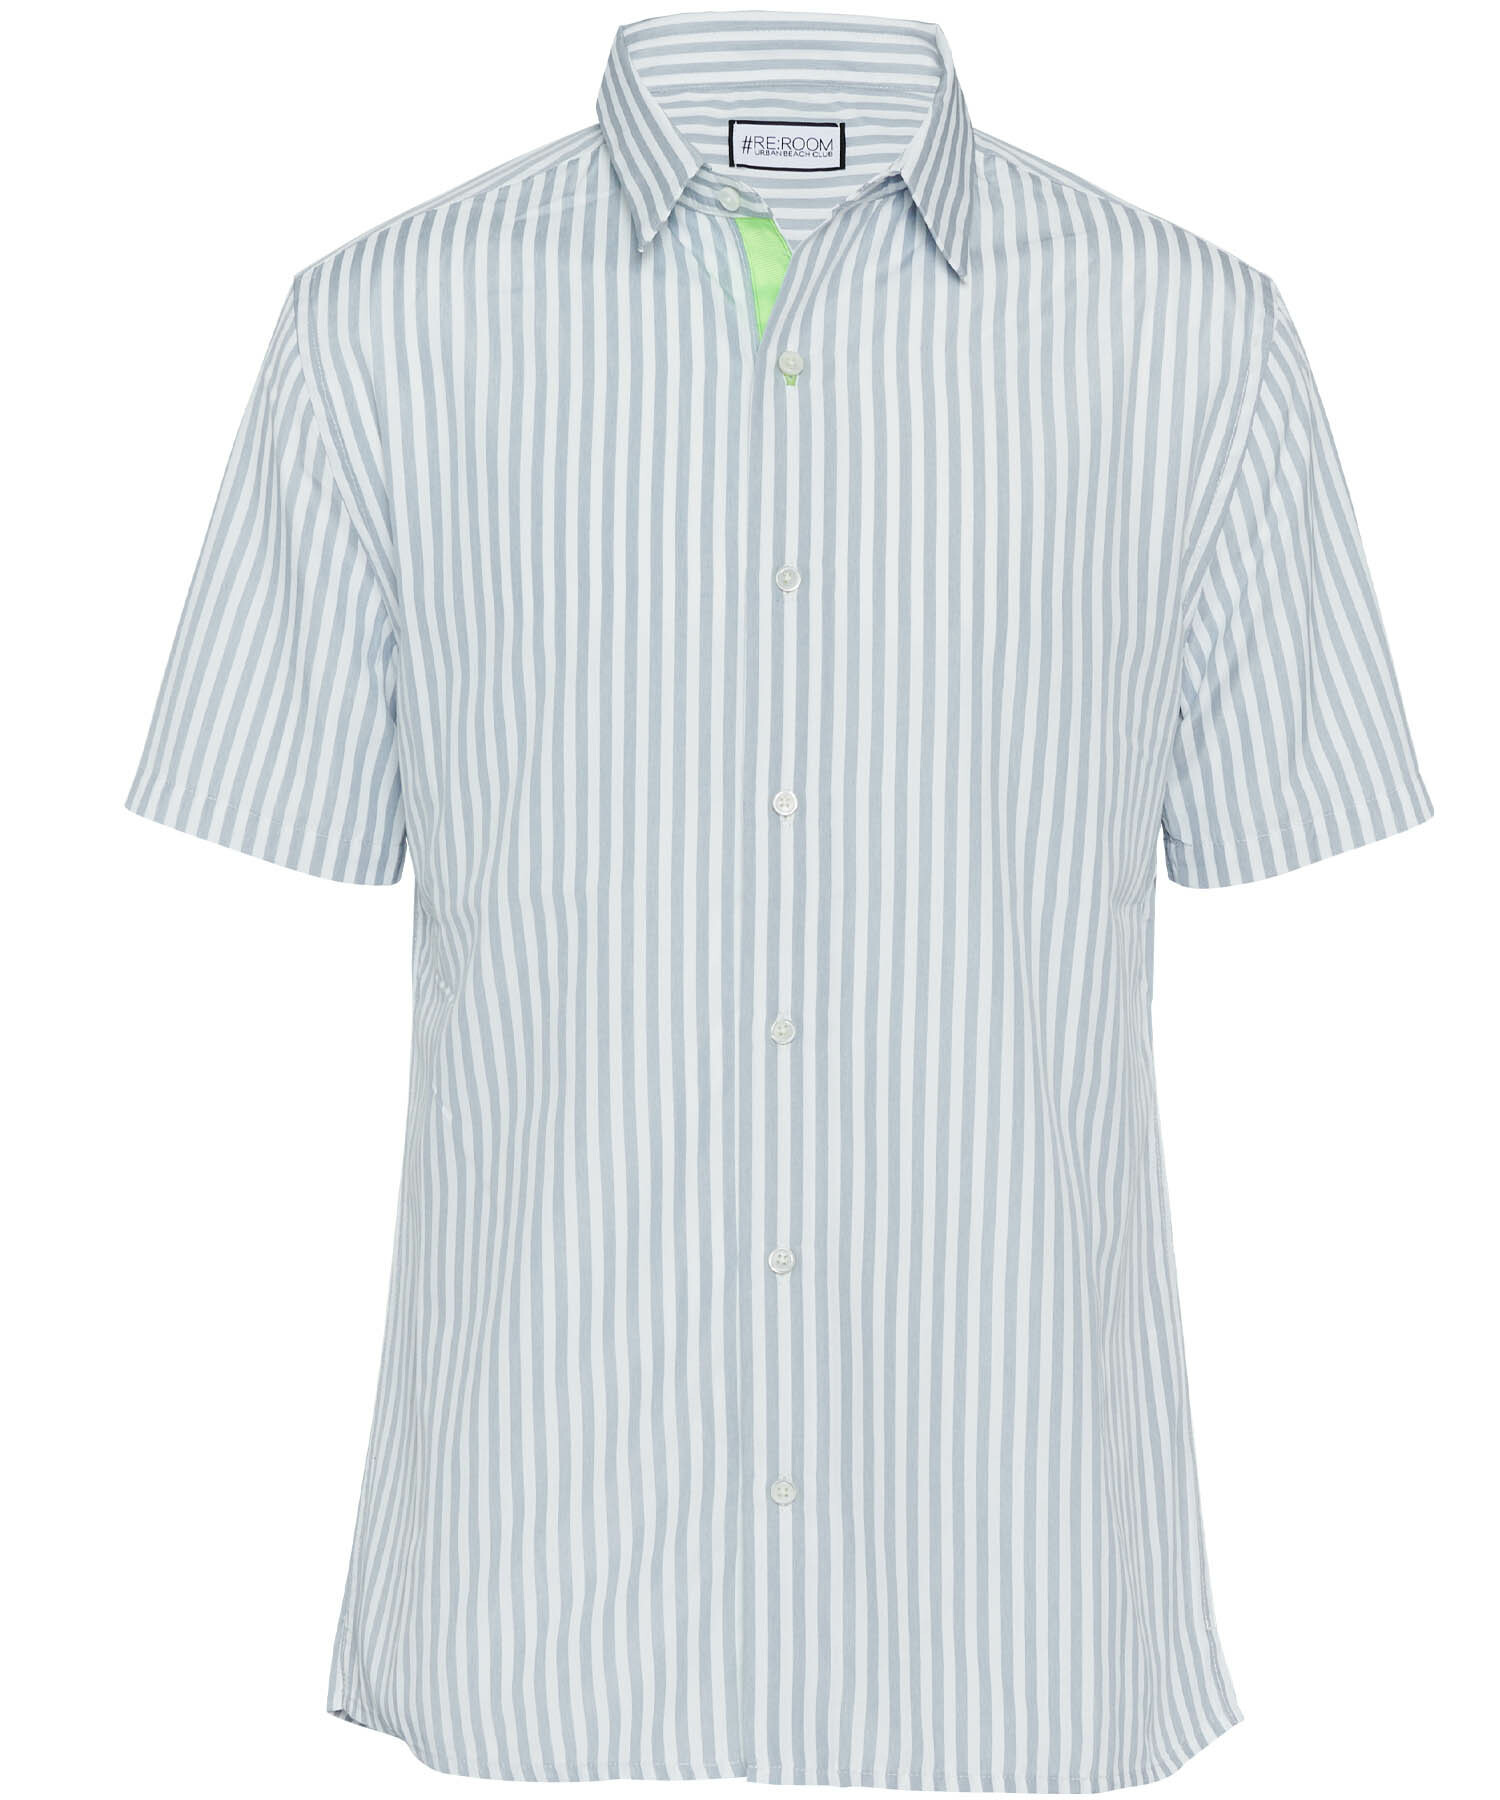 PLAIN STRIPE SHORT SLEEVE SHIRTS[RUS001]